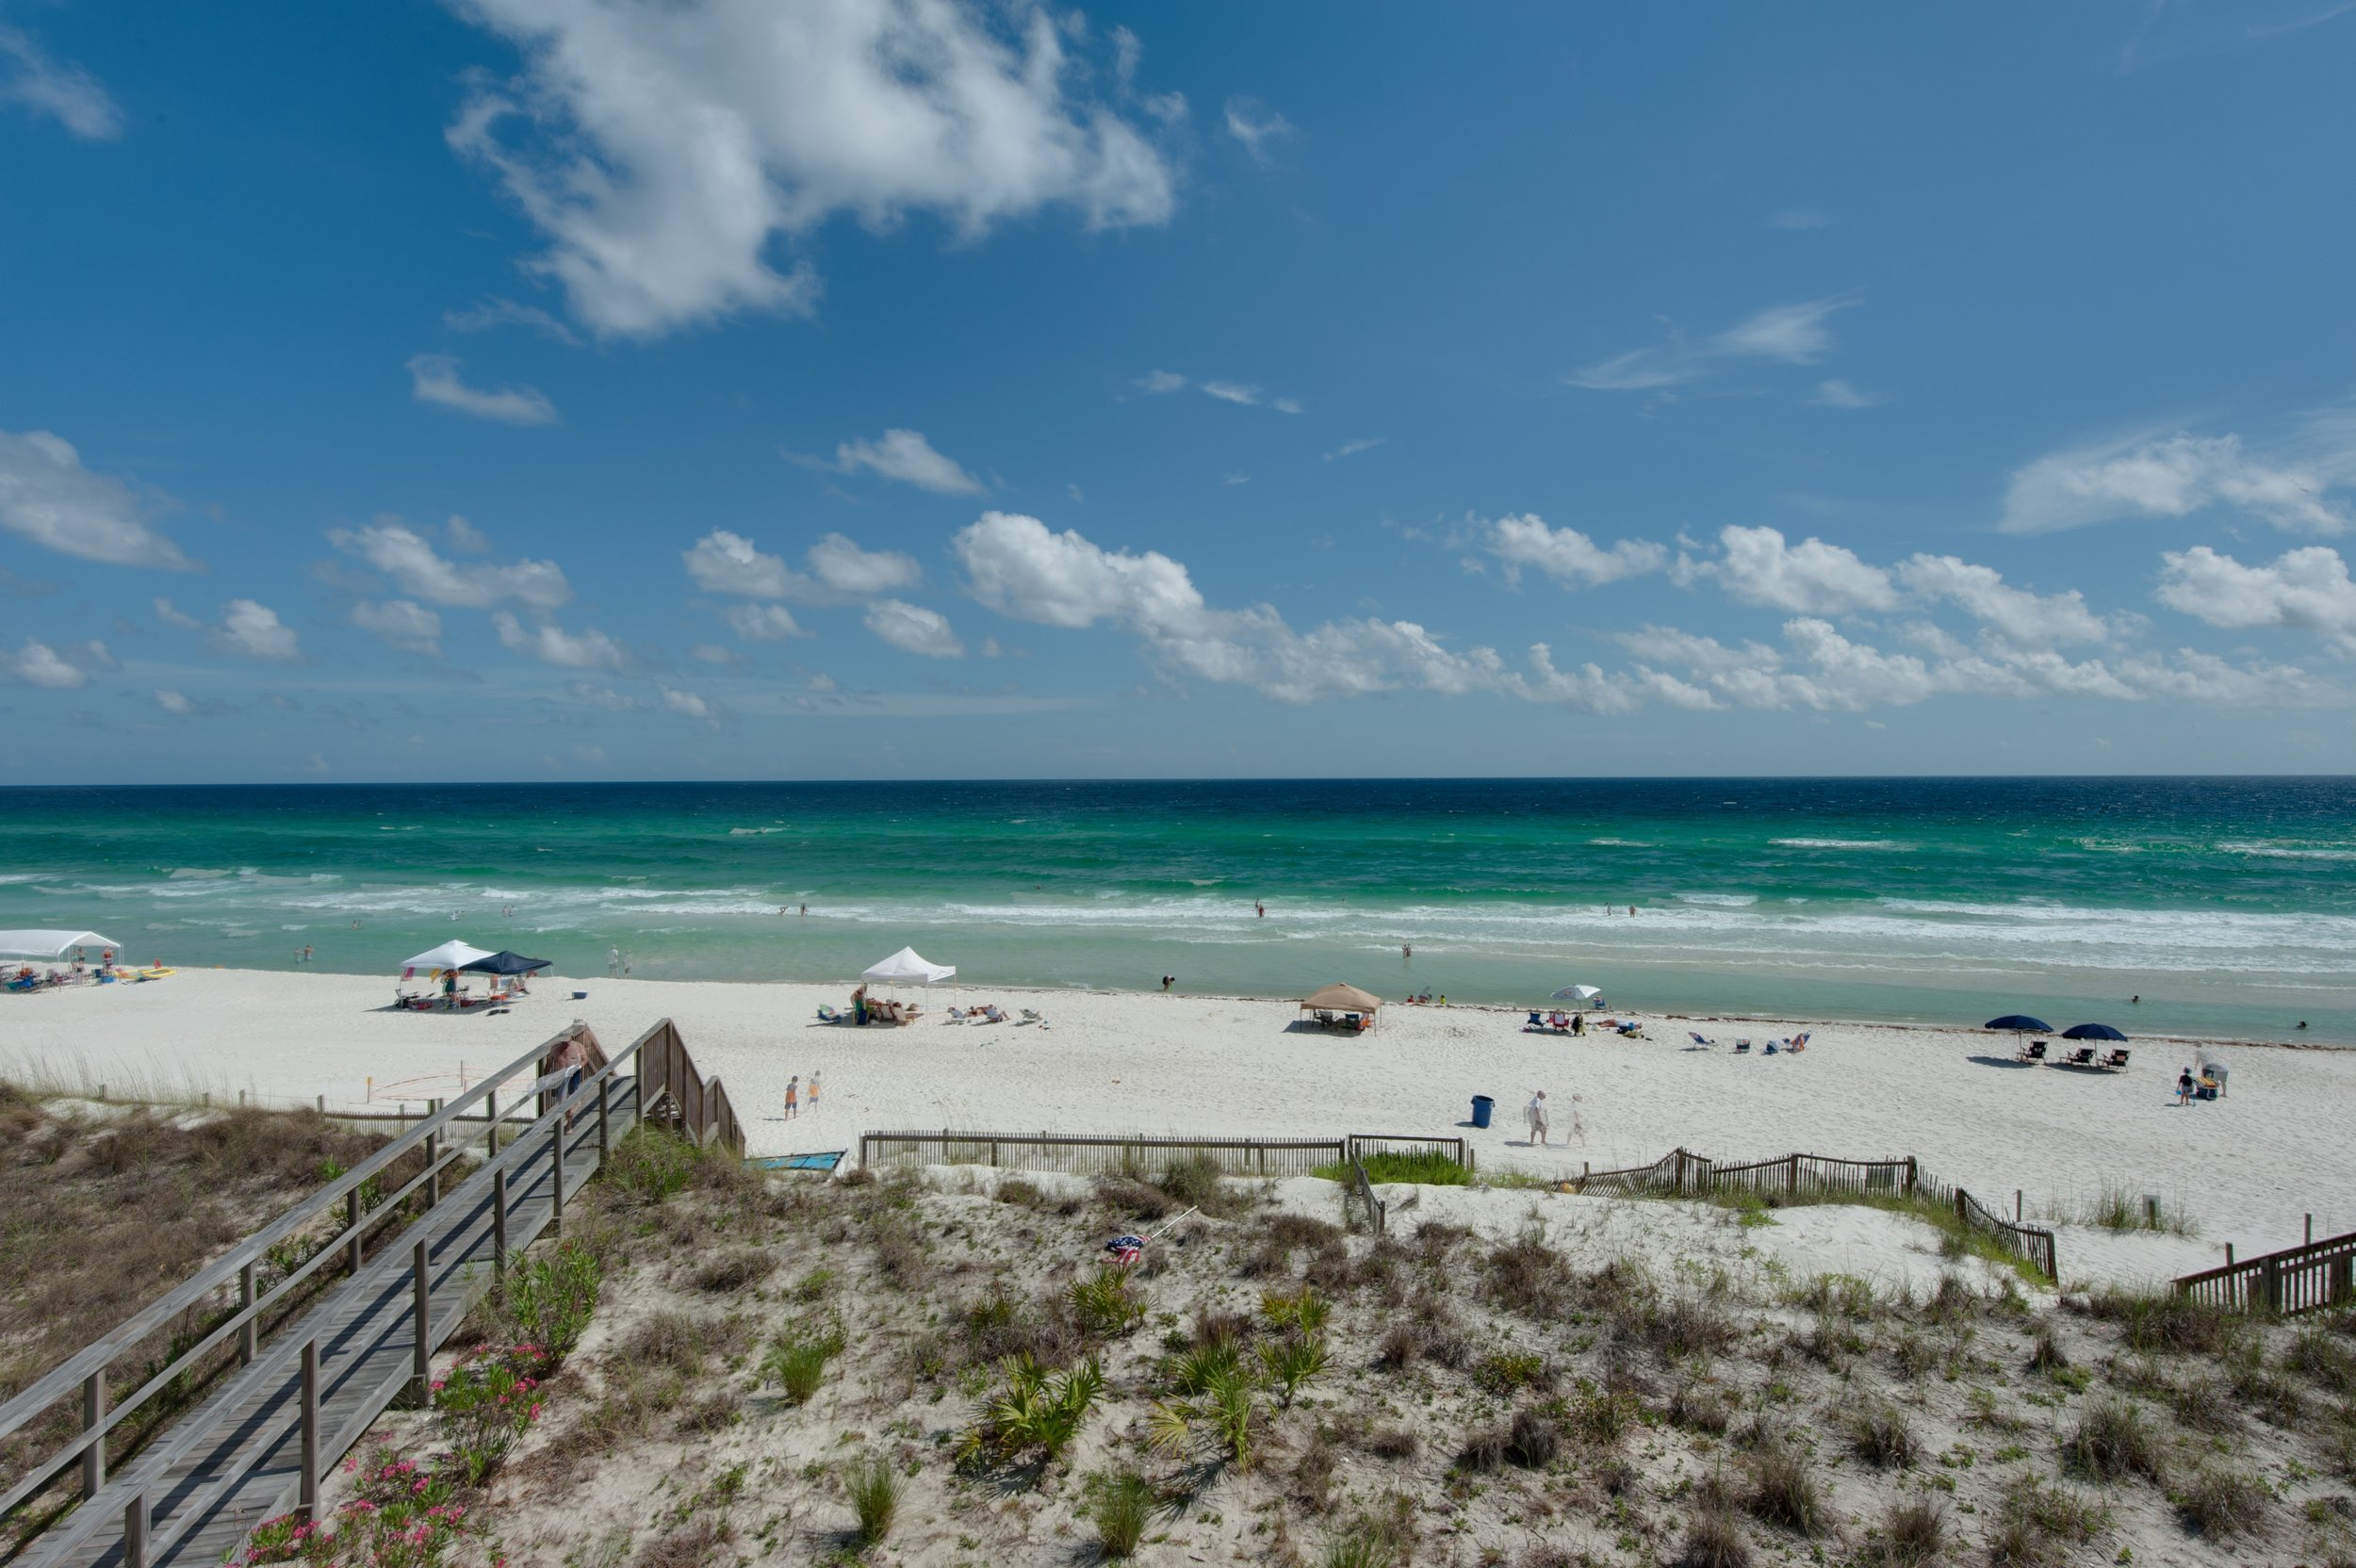 21621FrontBeach_20130618_860-fused.jpeg